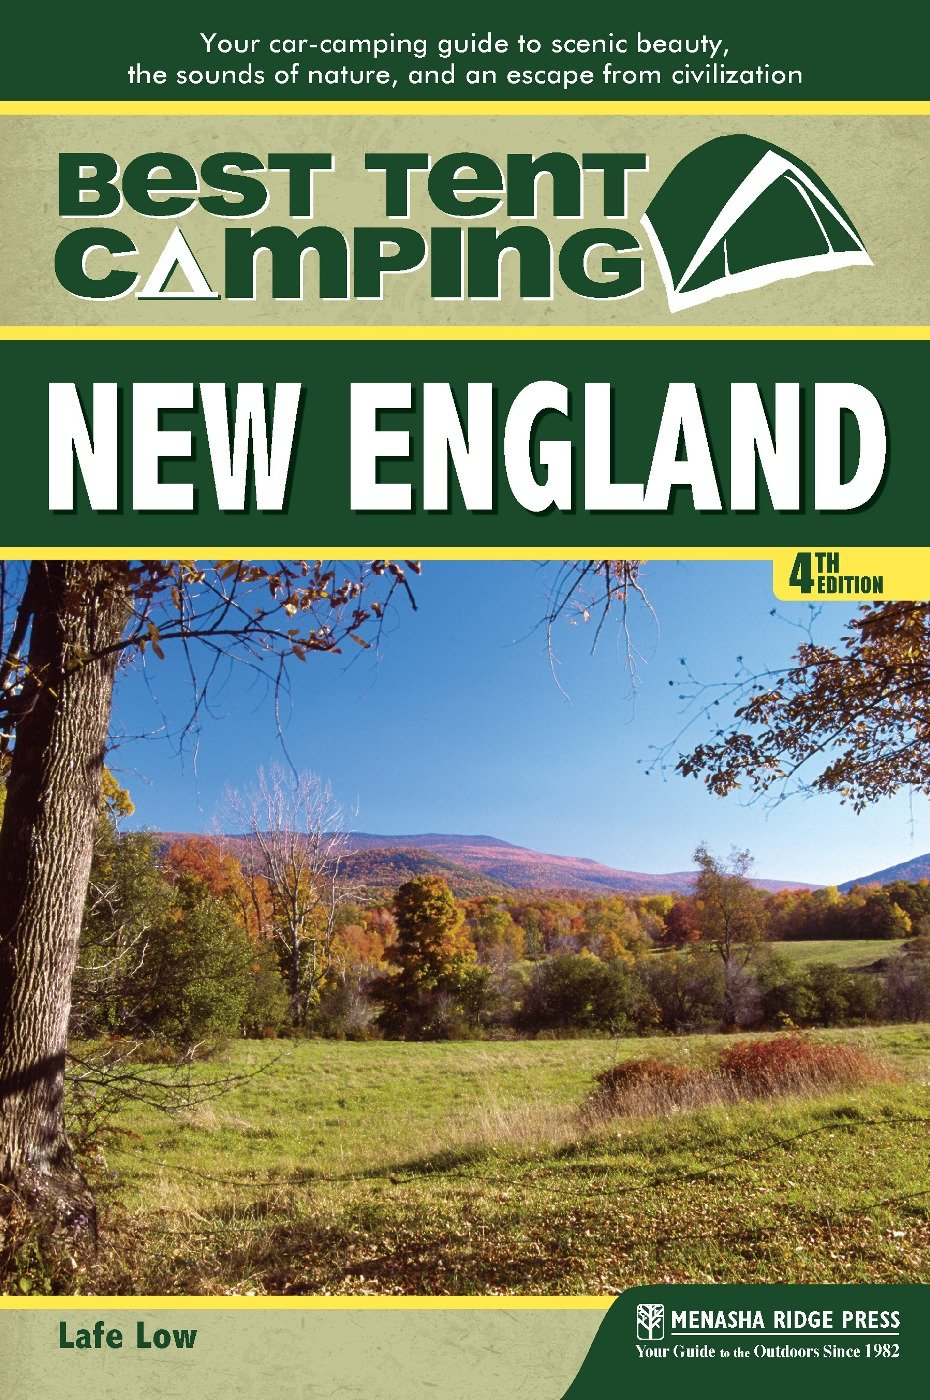 Read Online Best Tent Camping: New England: Your Car-Camping Guide to Scenic Beauty, the Sounds of Nature, and an Escape from Civilization pdf epub